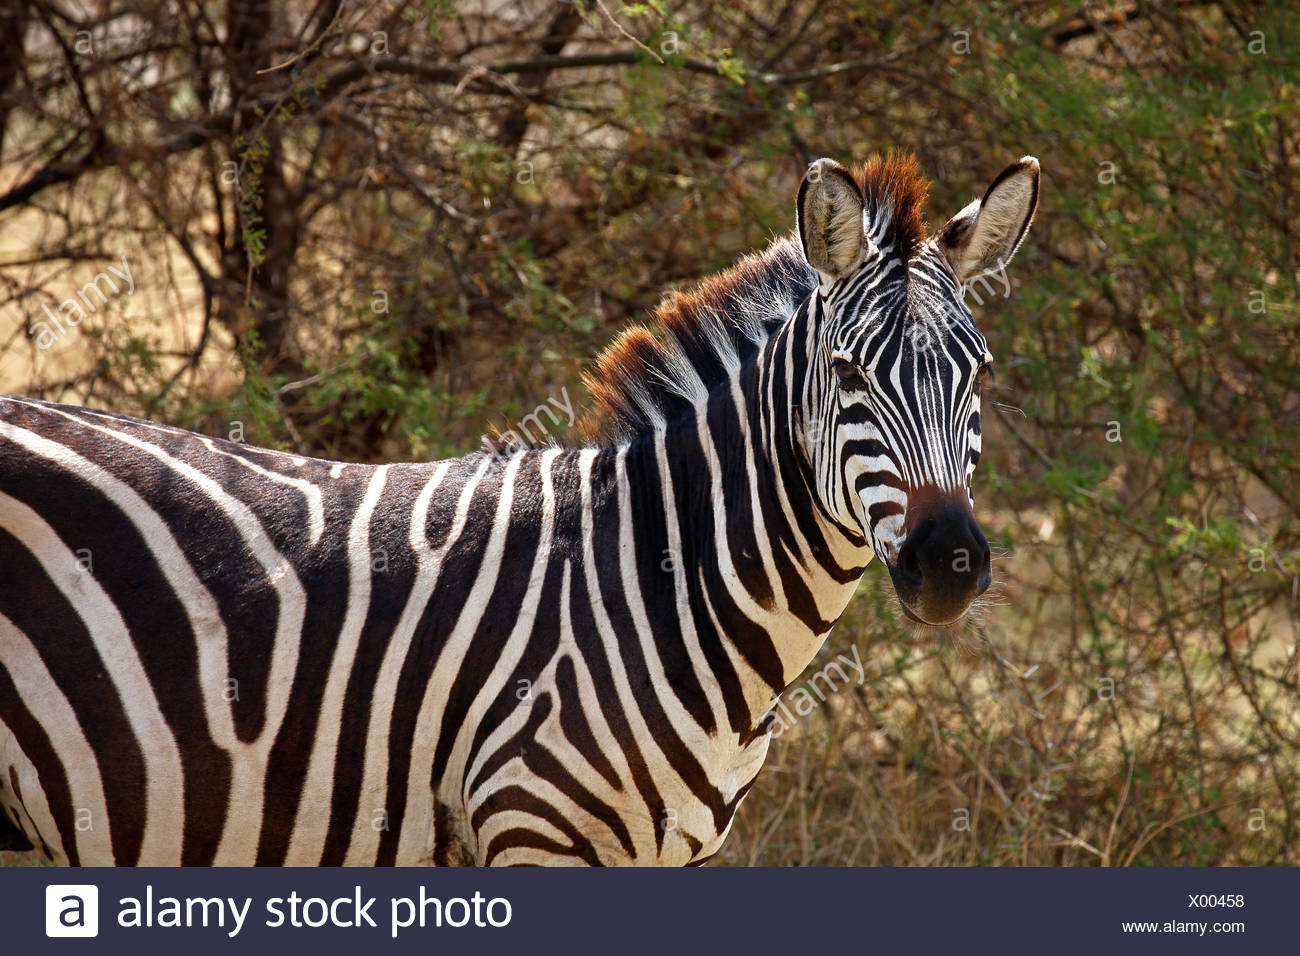 Plains zebra (Equus quagga), Lake Manyara National Park, Tanzania - Stock Image